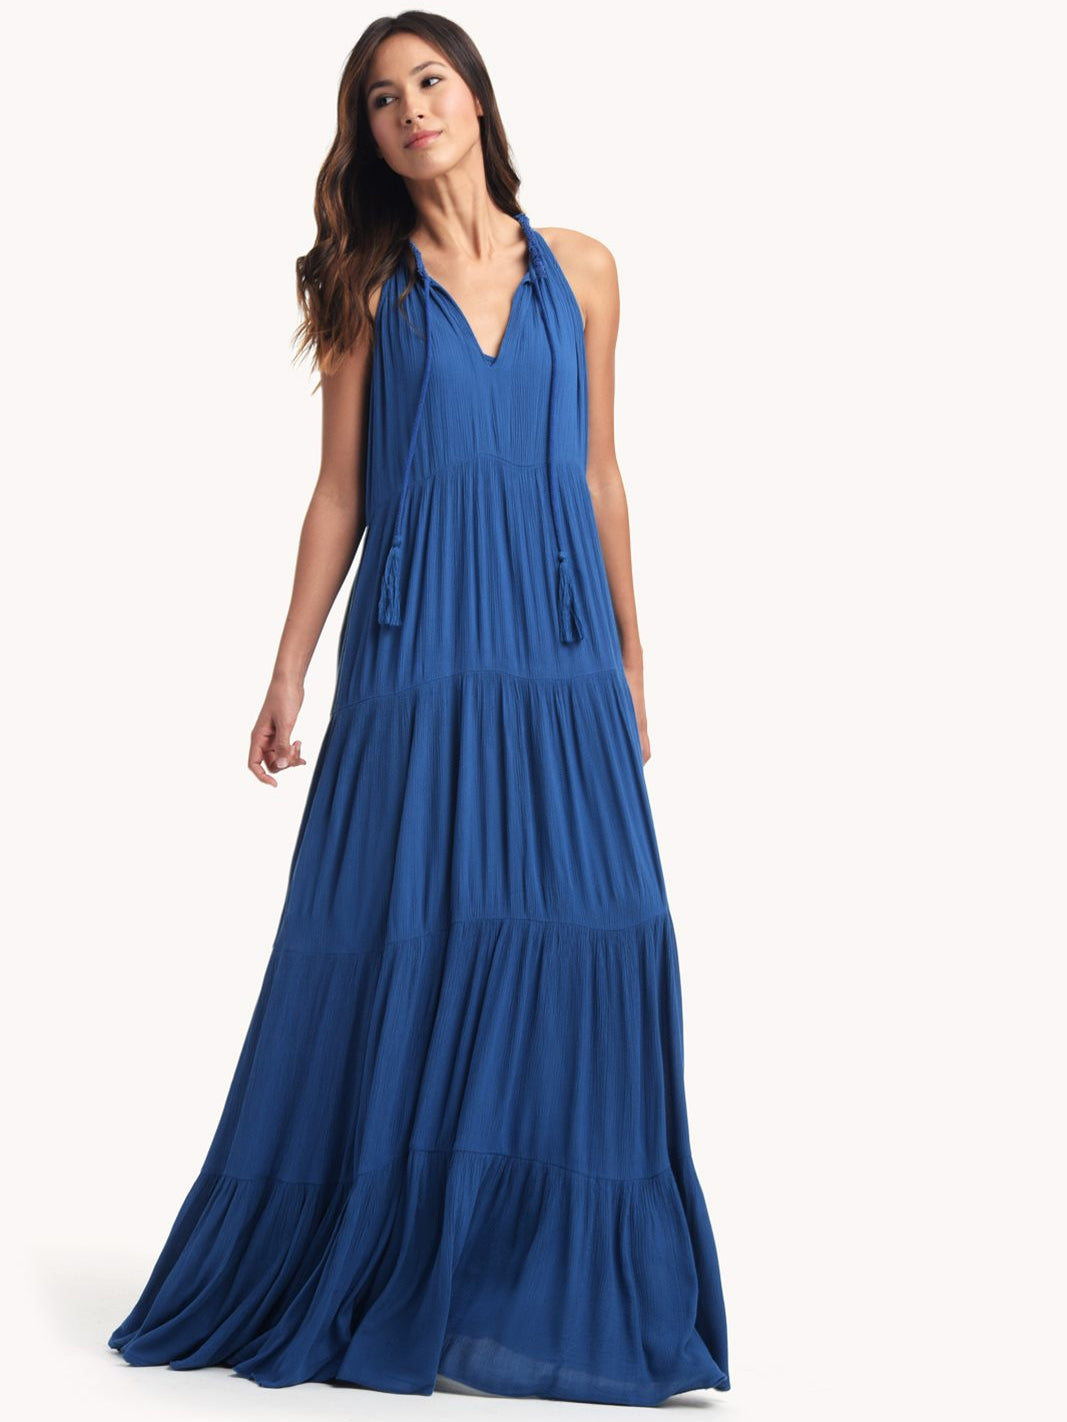 TILDEN | Ella Moss Tiered Maxi Dress